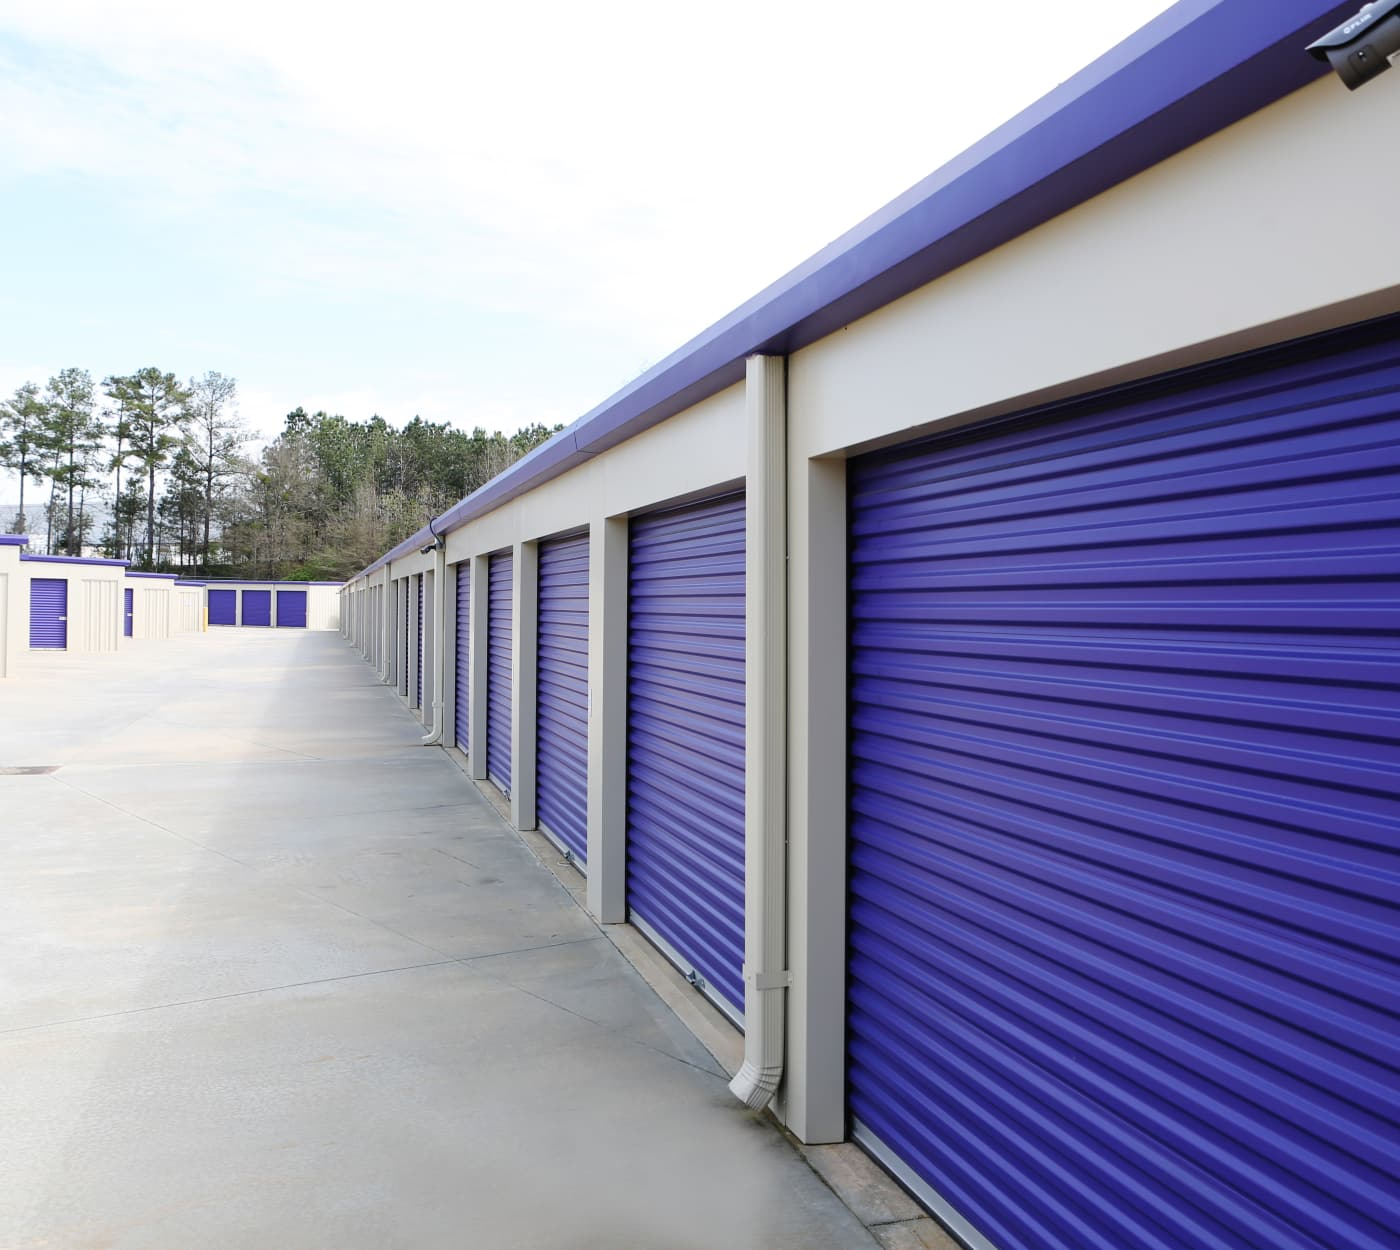 Units with blu roll-up doors at StoreSmart Self-Storage in McDonough, Georgia